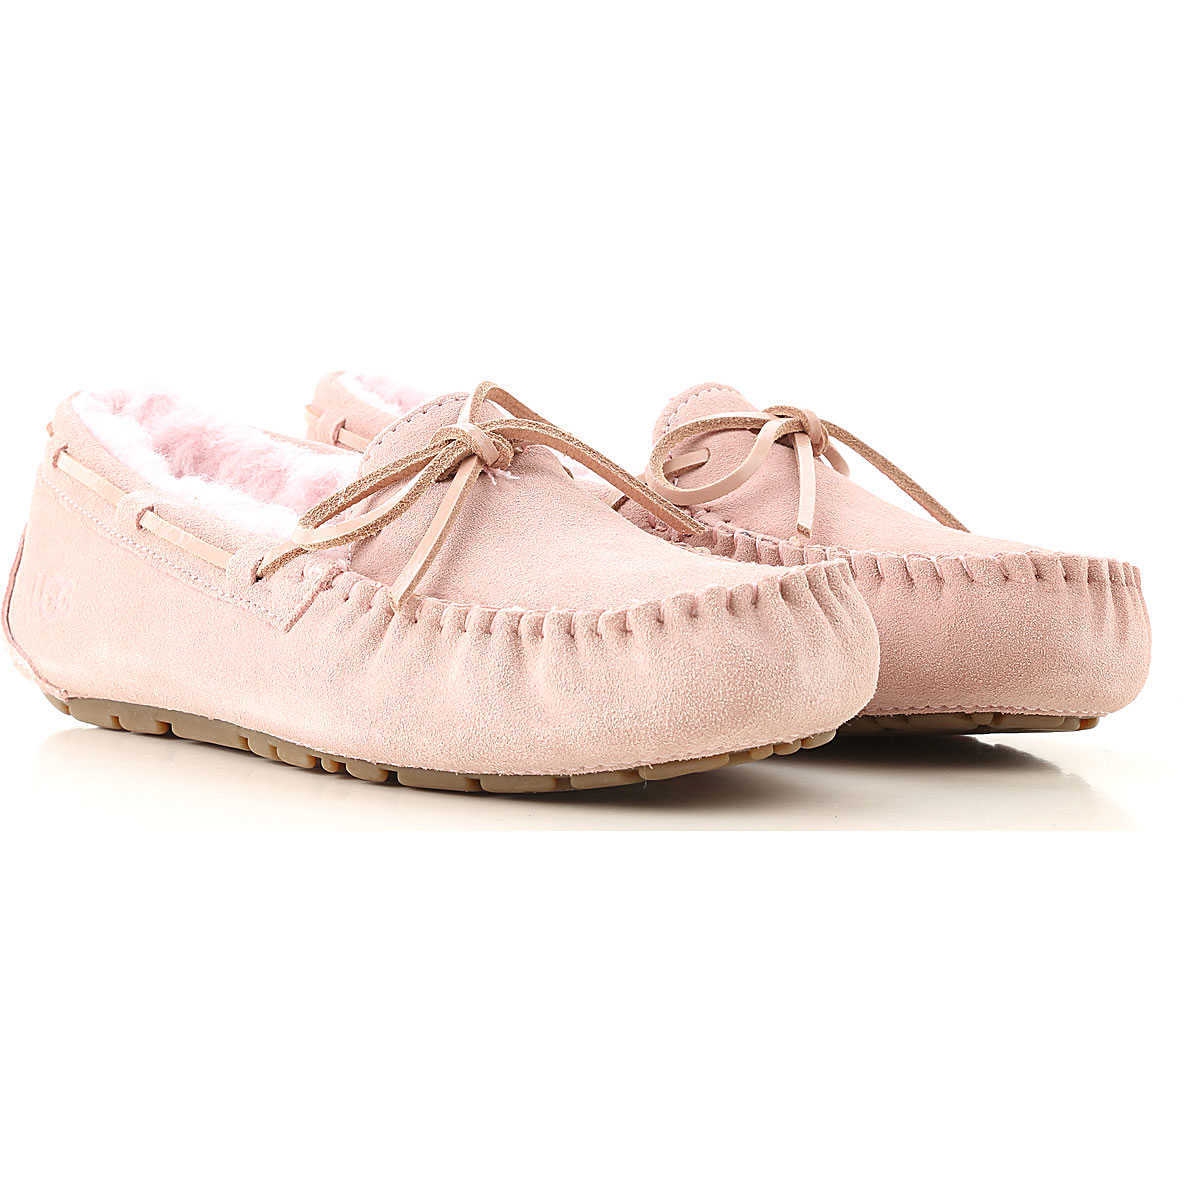 UGG Loafers for Women Rose - GOOFASH